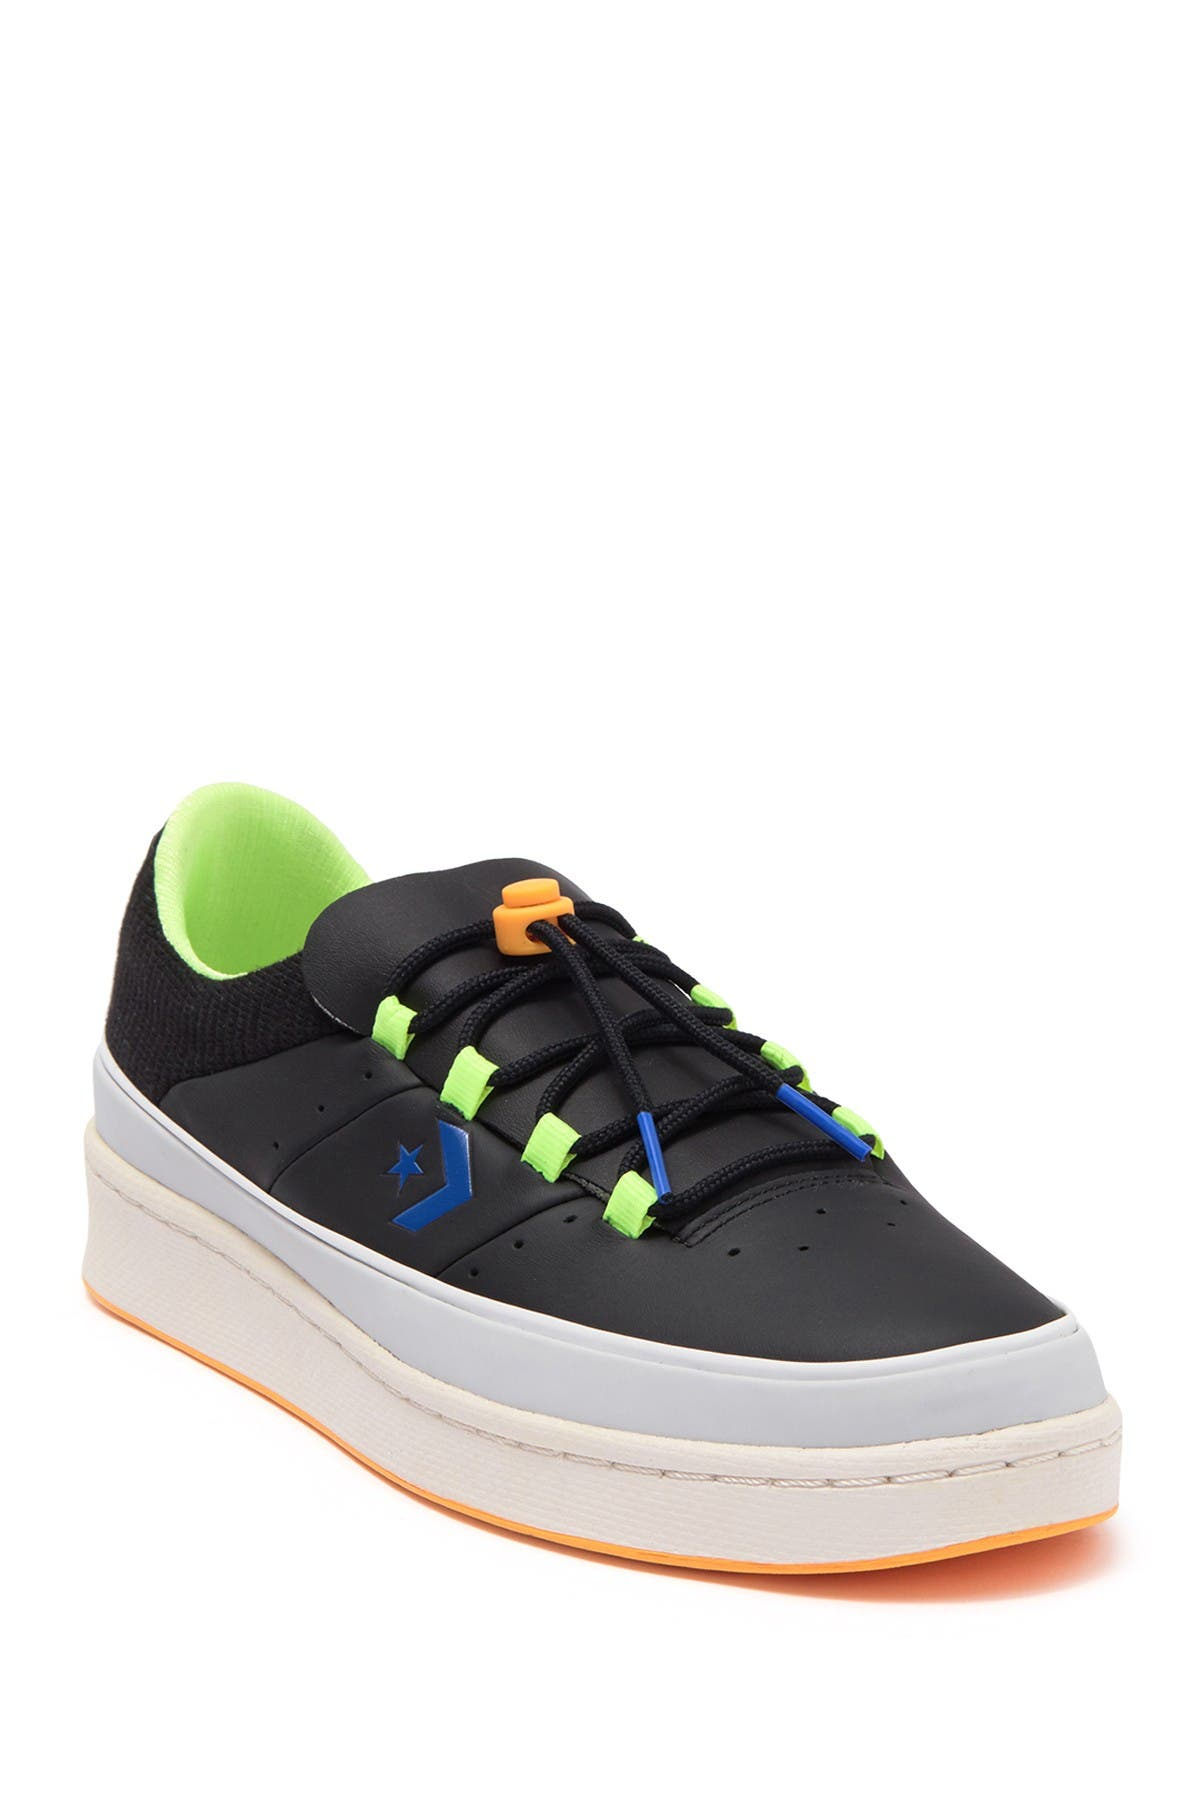 Image of Converse Pro Leather Ox Stream Sneaker